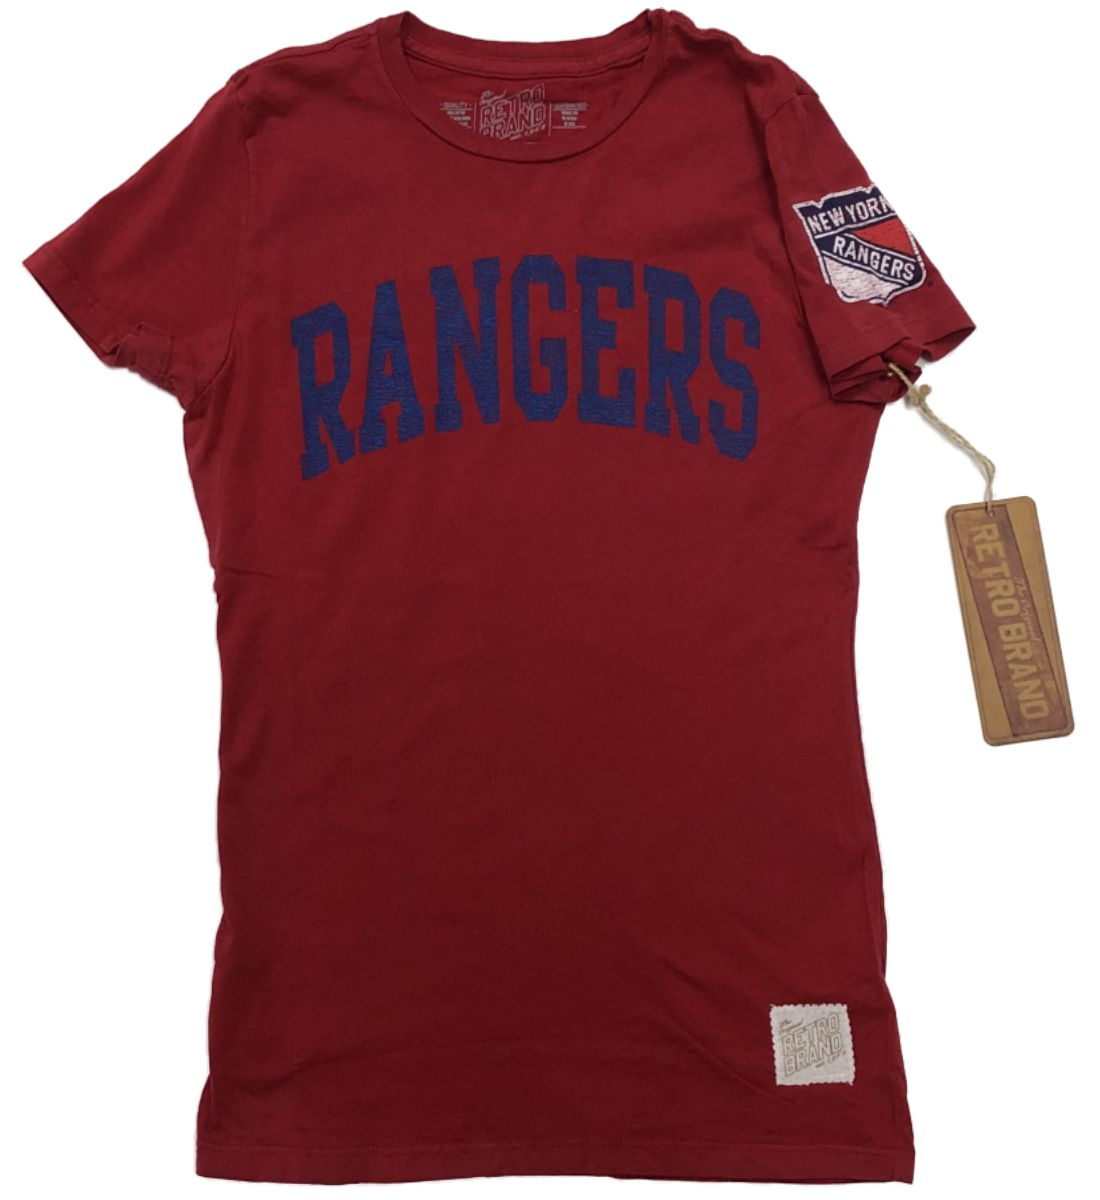 6641dca90 New York Rangers Retro Brand WOMEN Red Soft Cotton Capped Sleeve T-Shirt